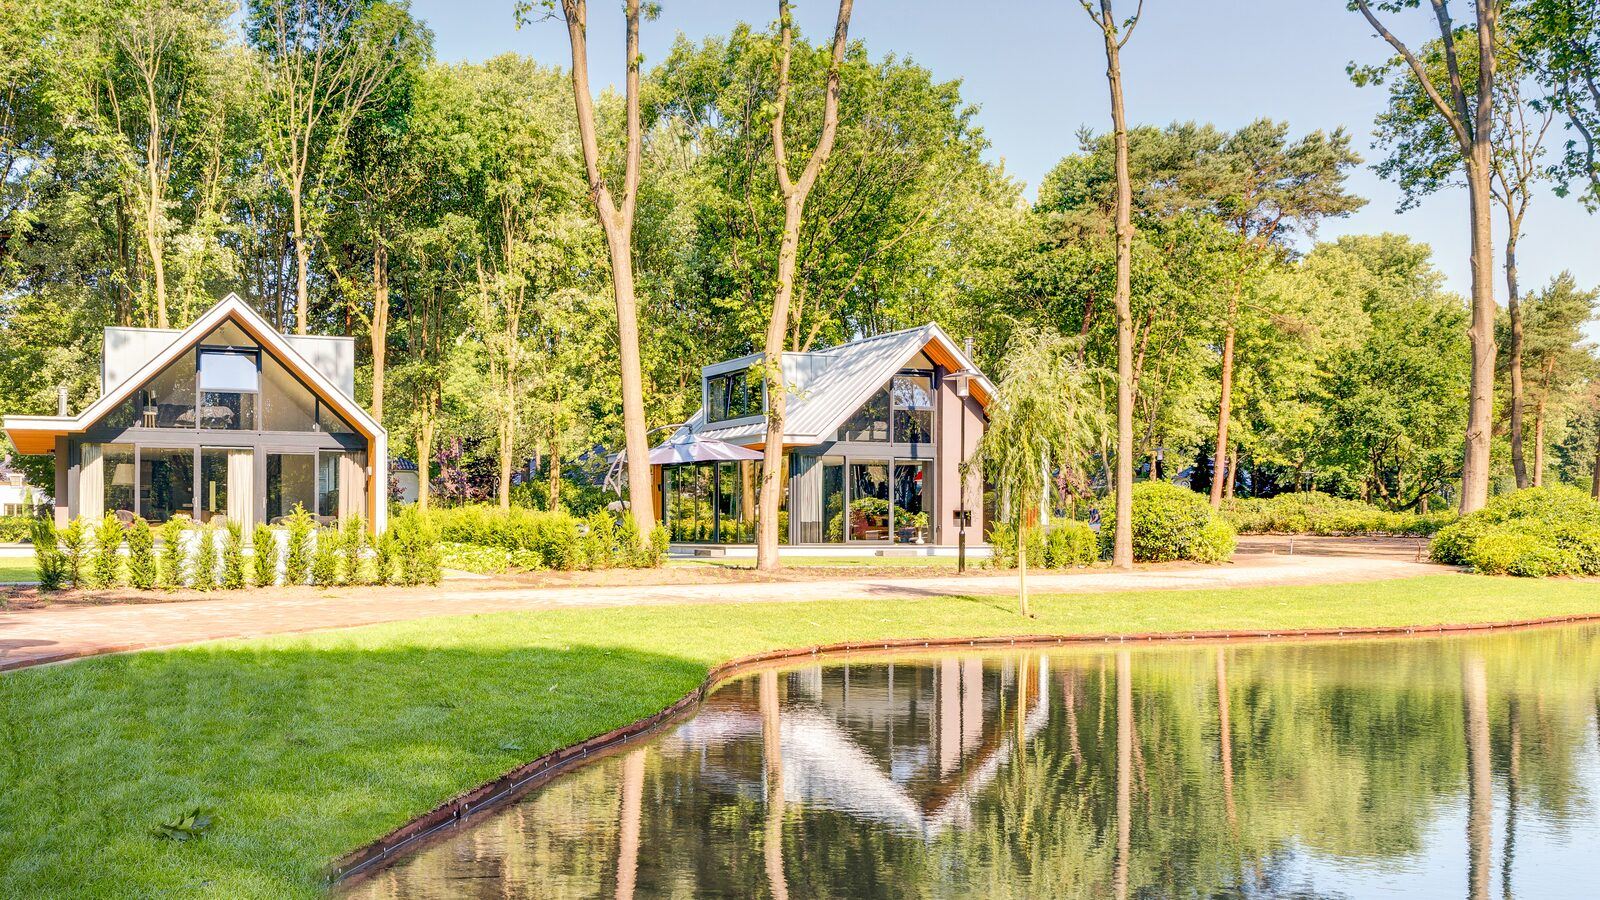 Holiday parks in the Netherlands